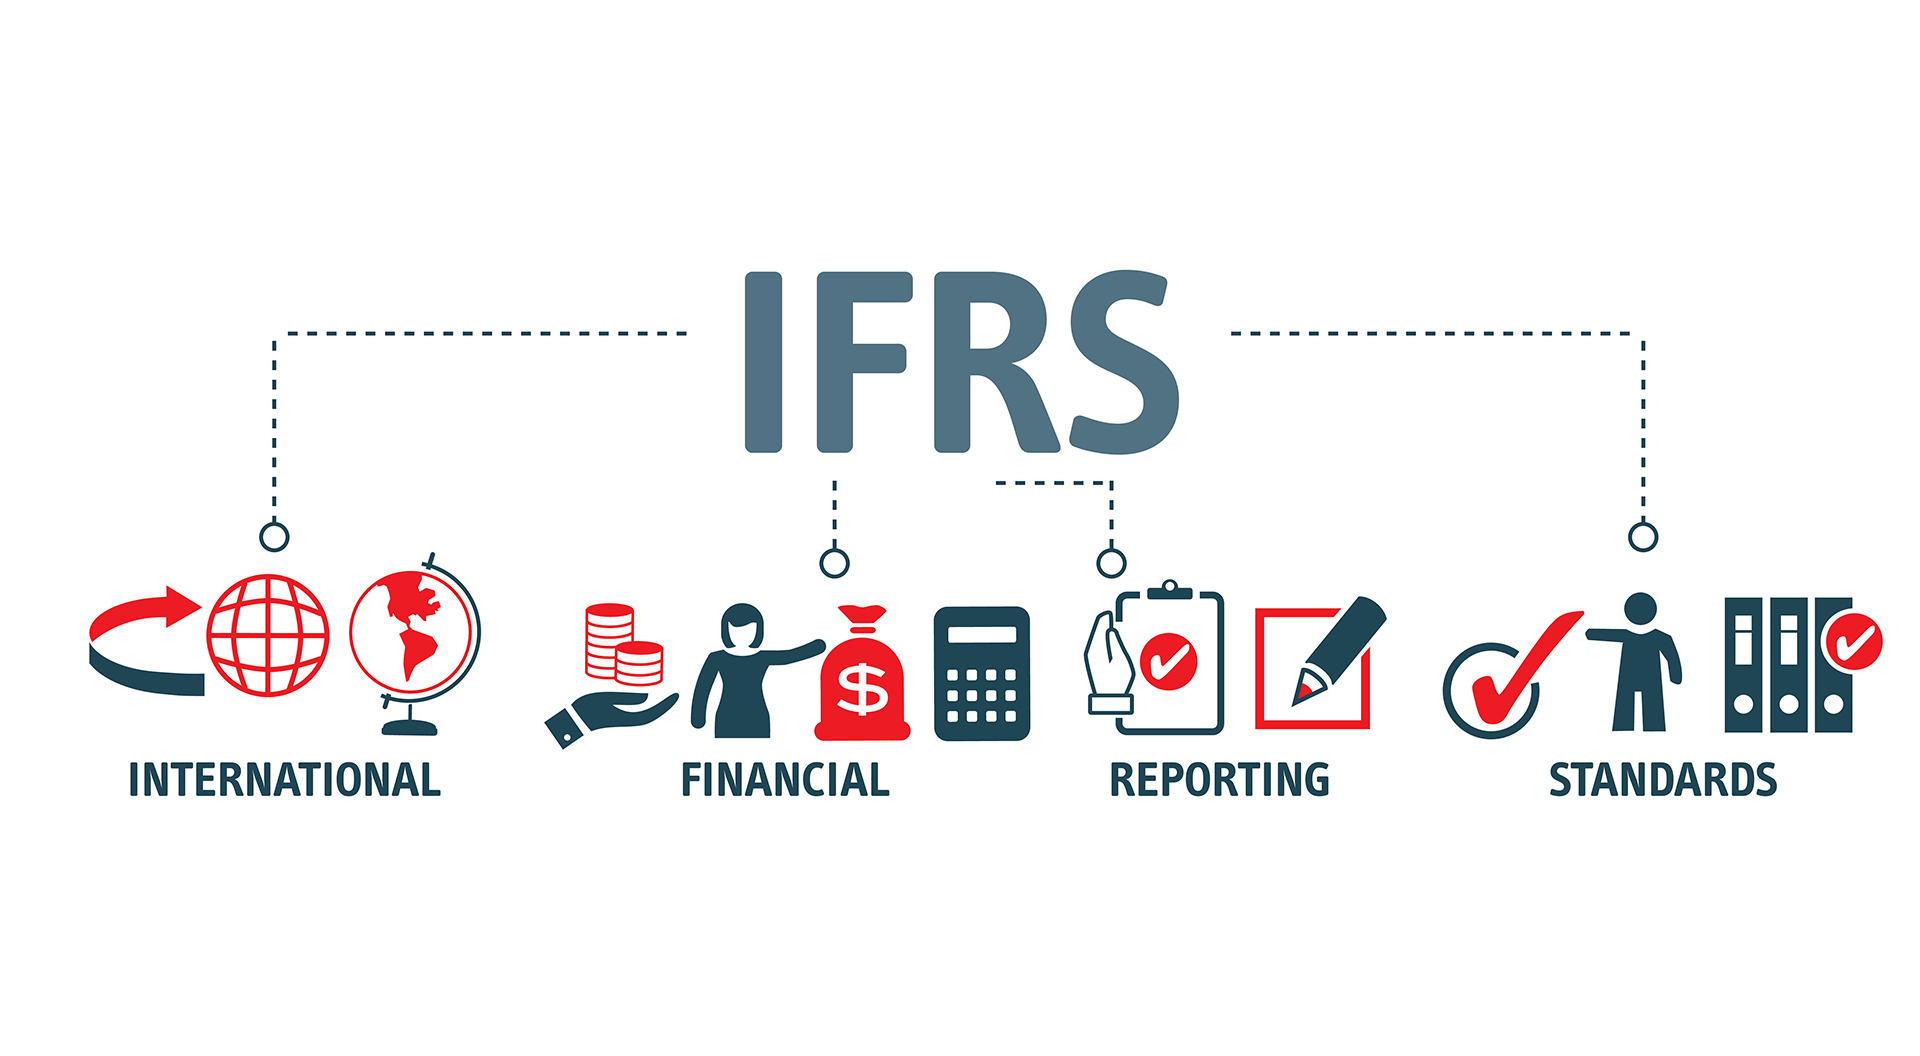 IFRS_281415902_1920